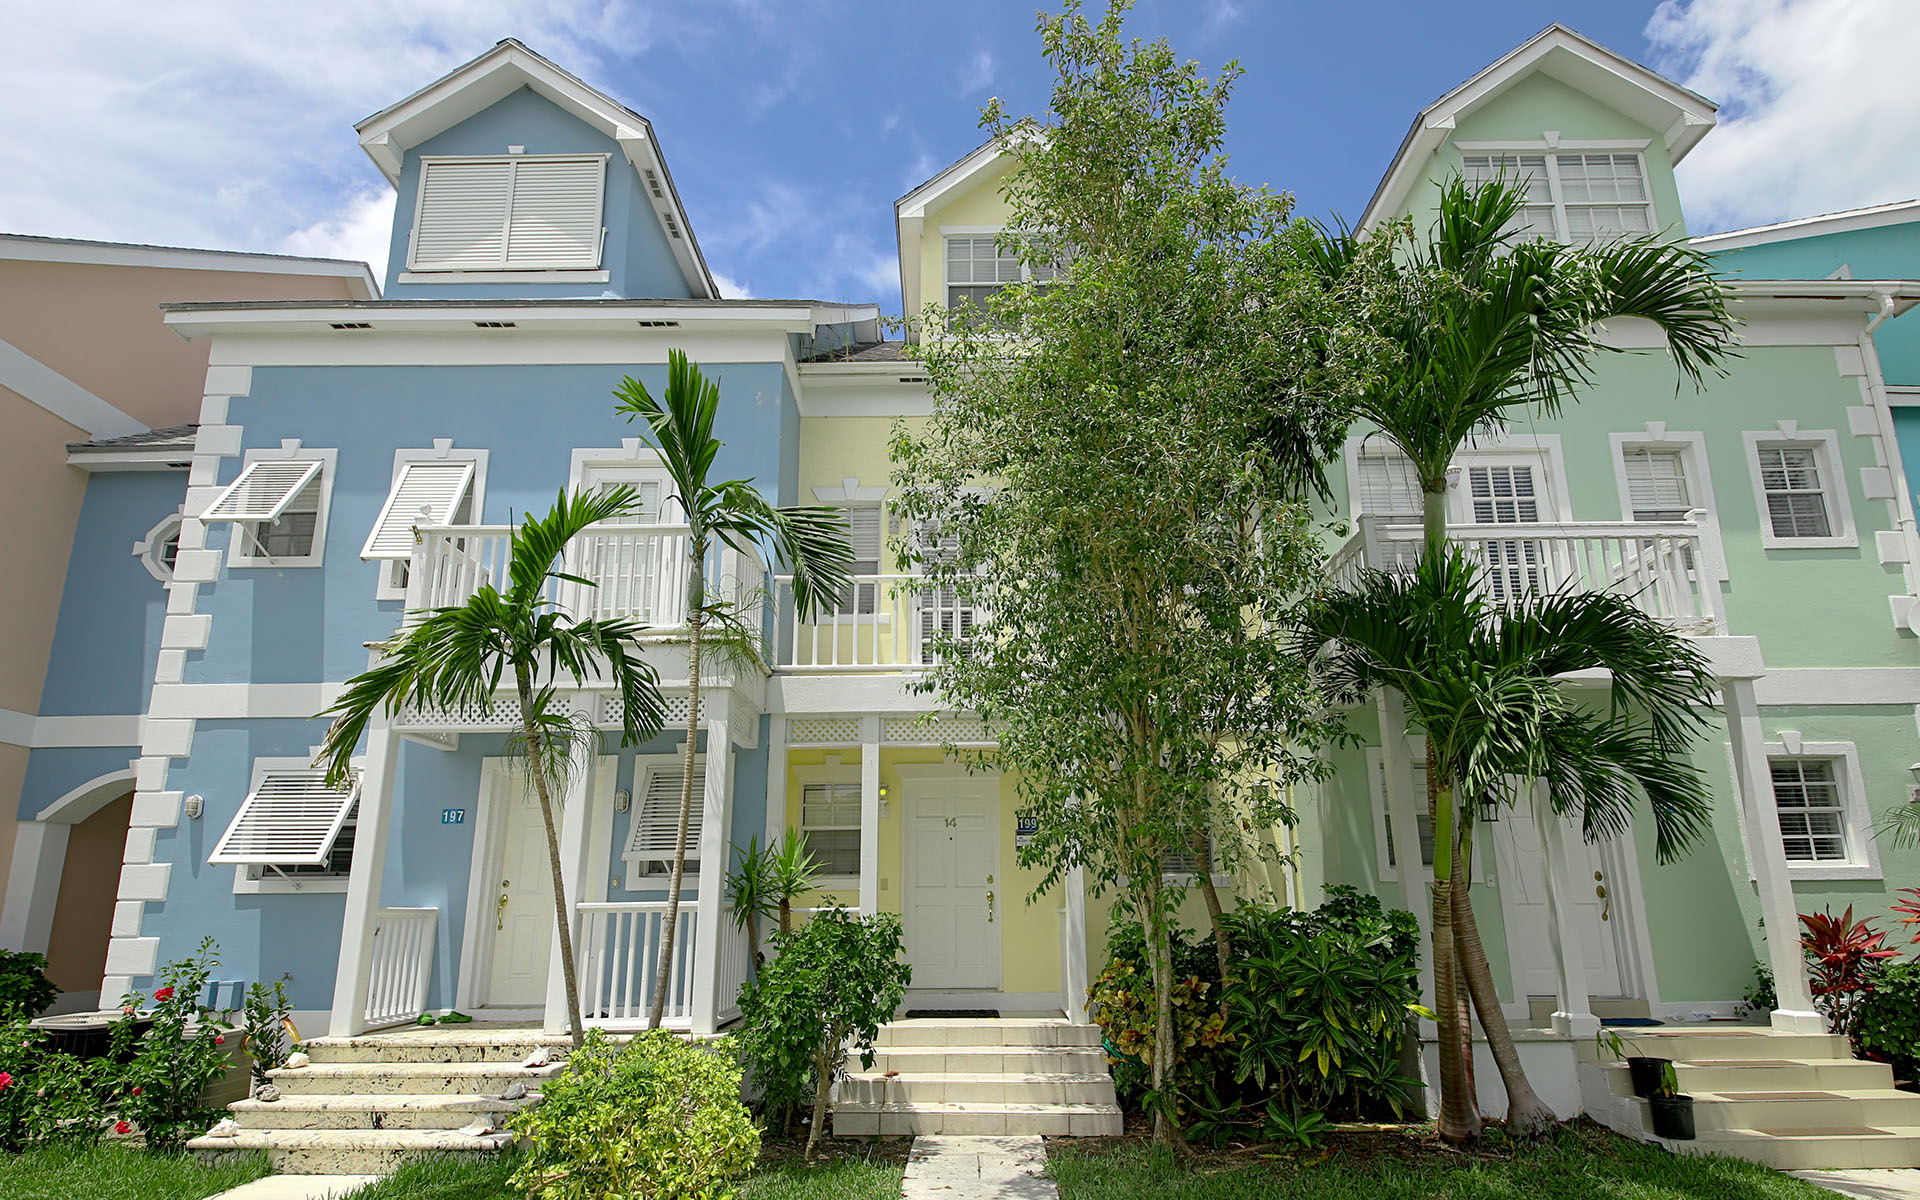 Co-op / Condo for Sale at #14 Sandyport Arches - MLS 31295 Sandyport, Cable Beach, Nassau And Paradise Island Bahamas